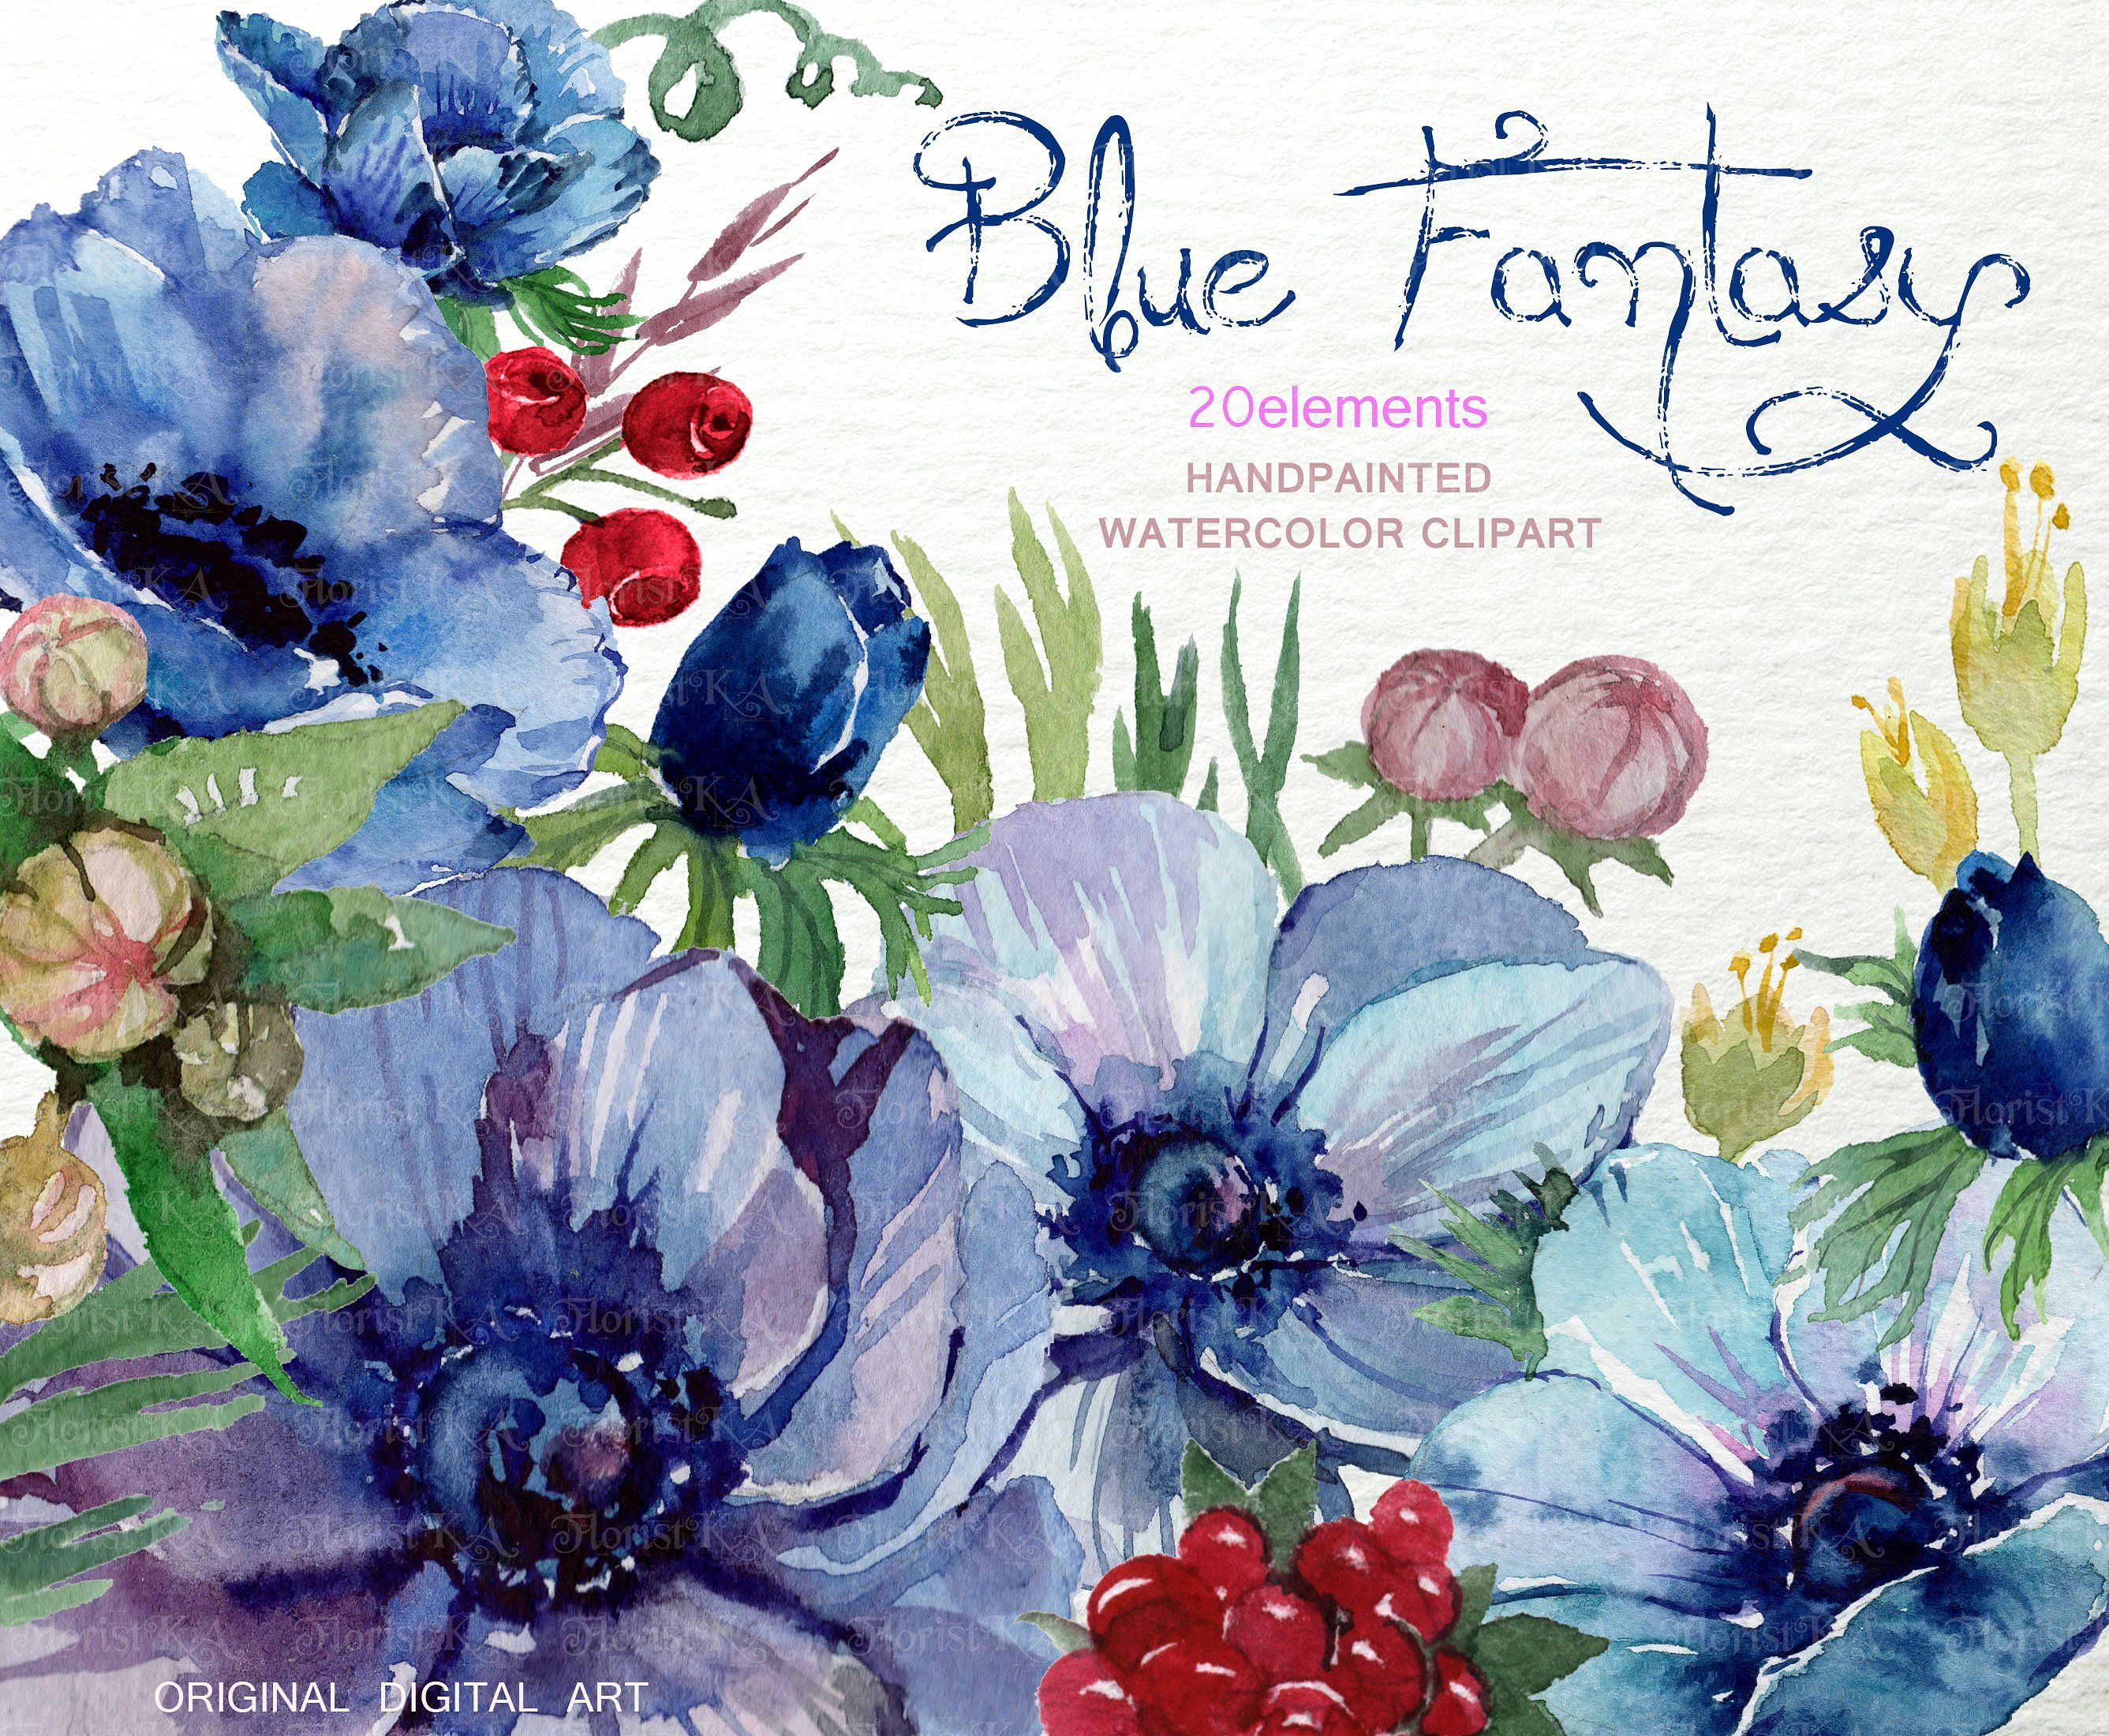 Watercolor Blue Anemone ClipArt F 23 By FLORISTKA On Creativemarket